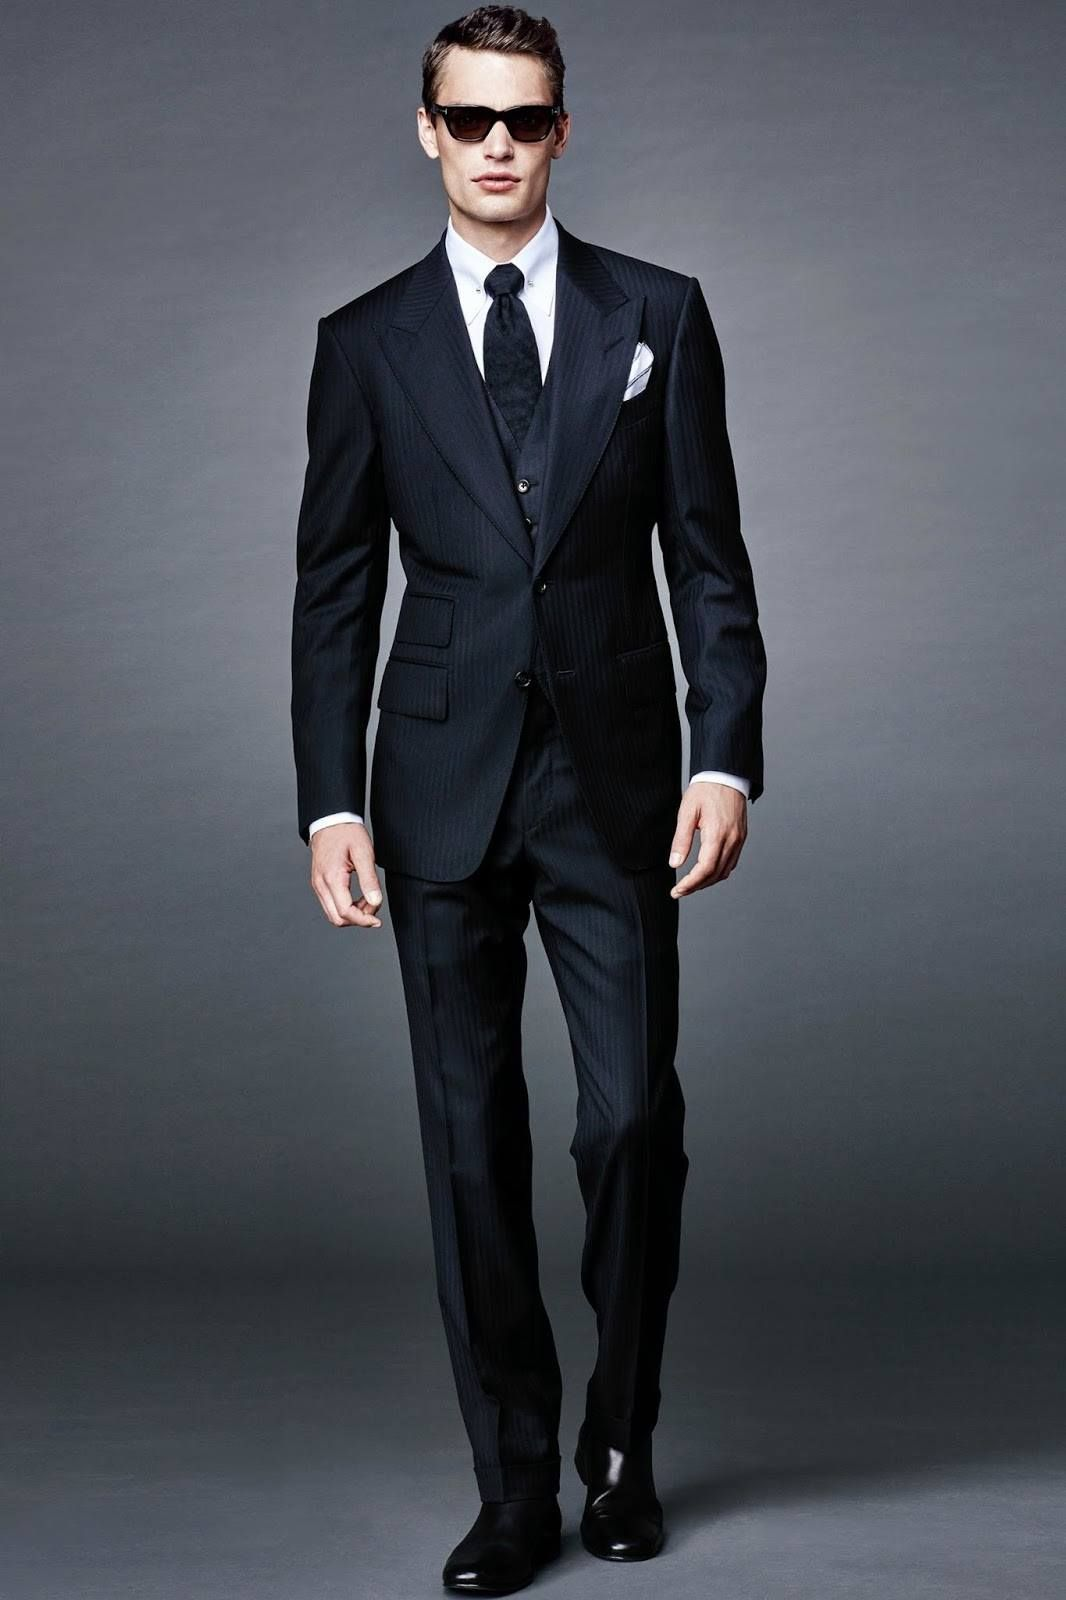 TOM FORD x BOND Lookbook -  Menswear  Trends  Tendencias  Moda Hombre eab79a796c